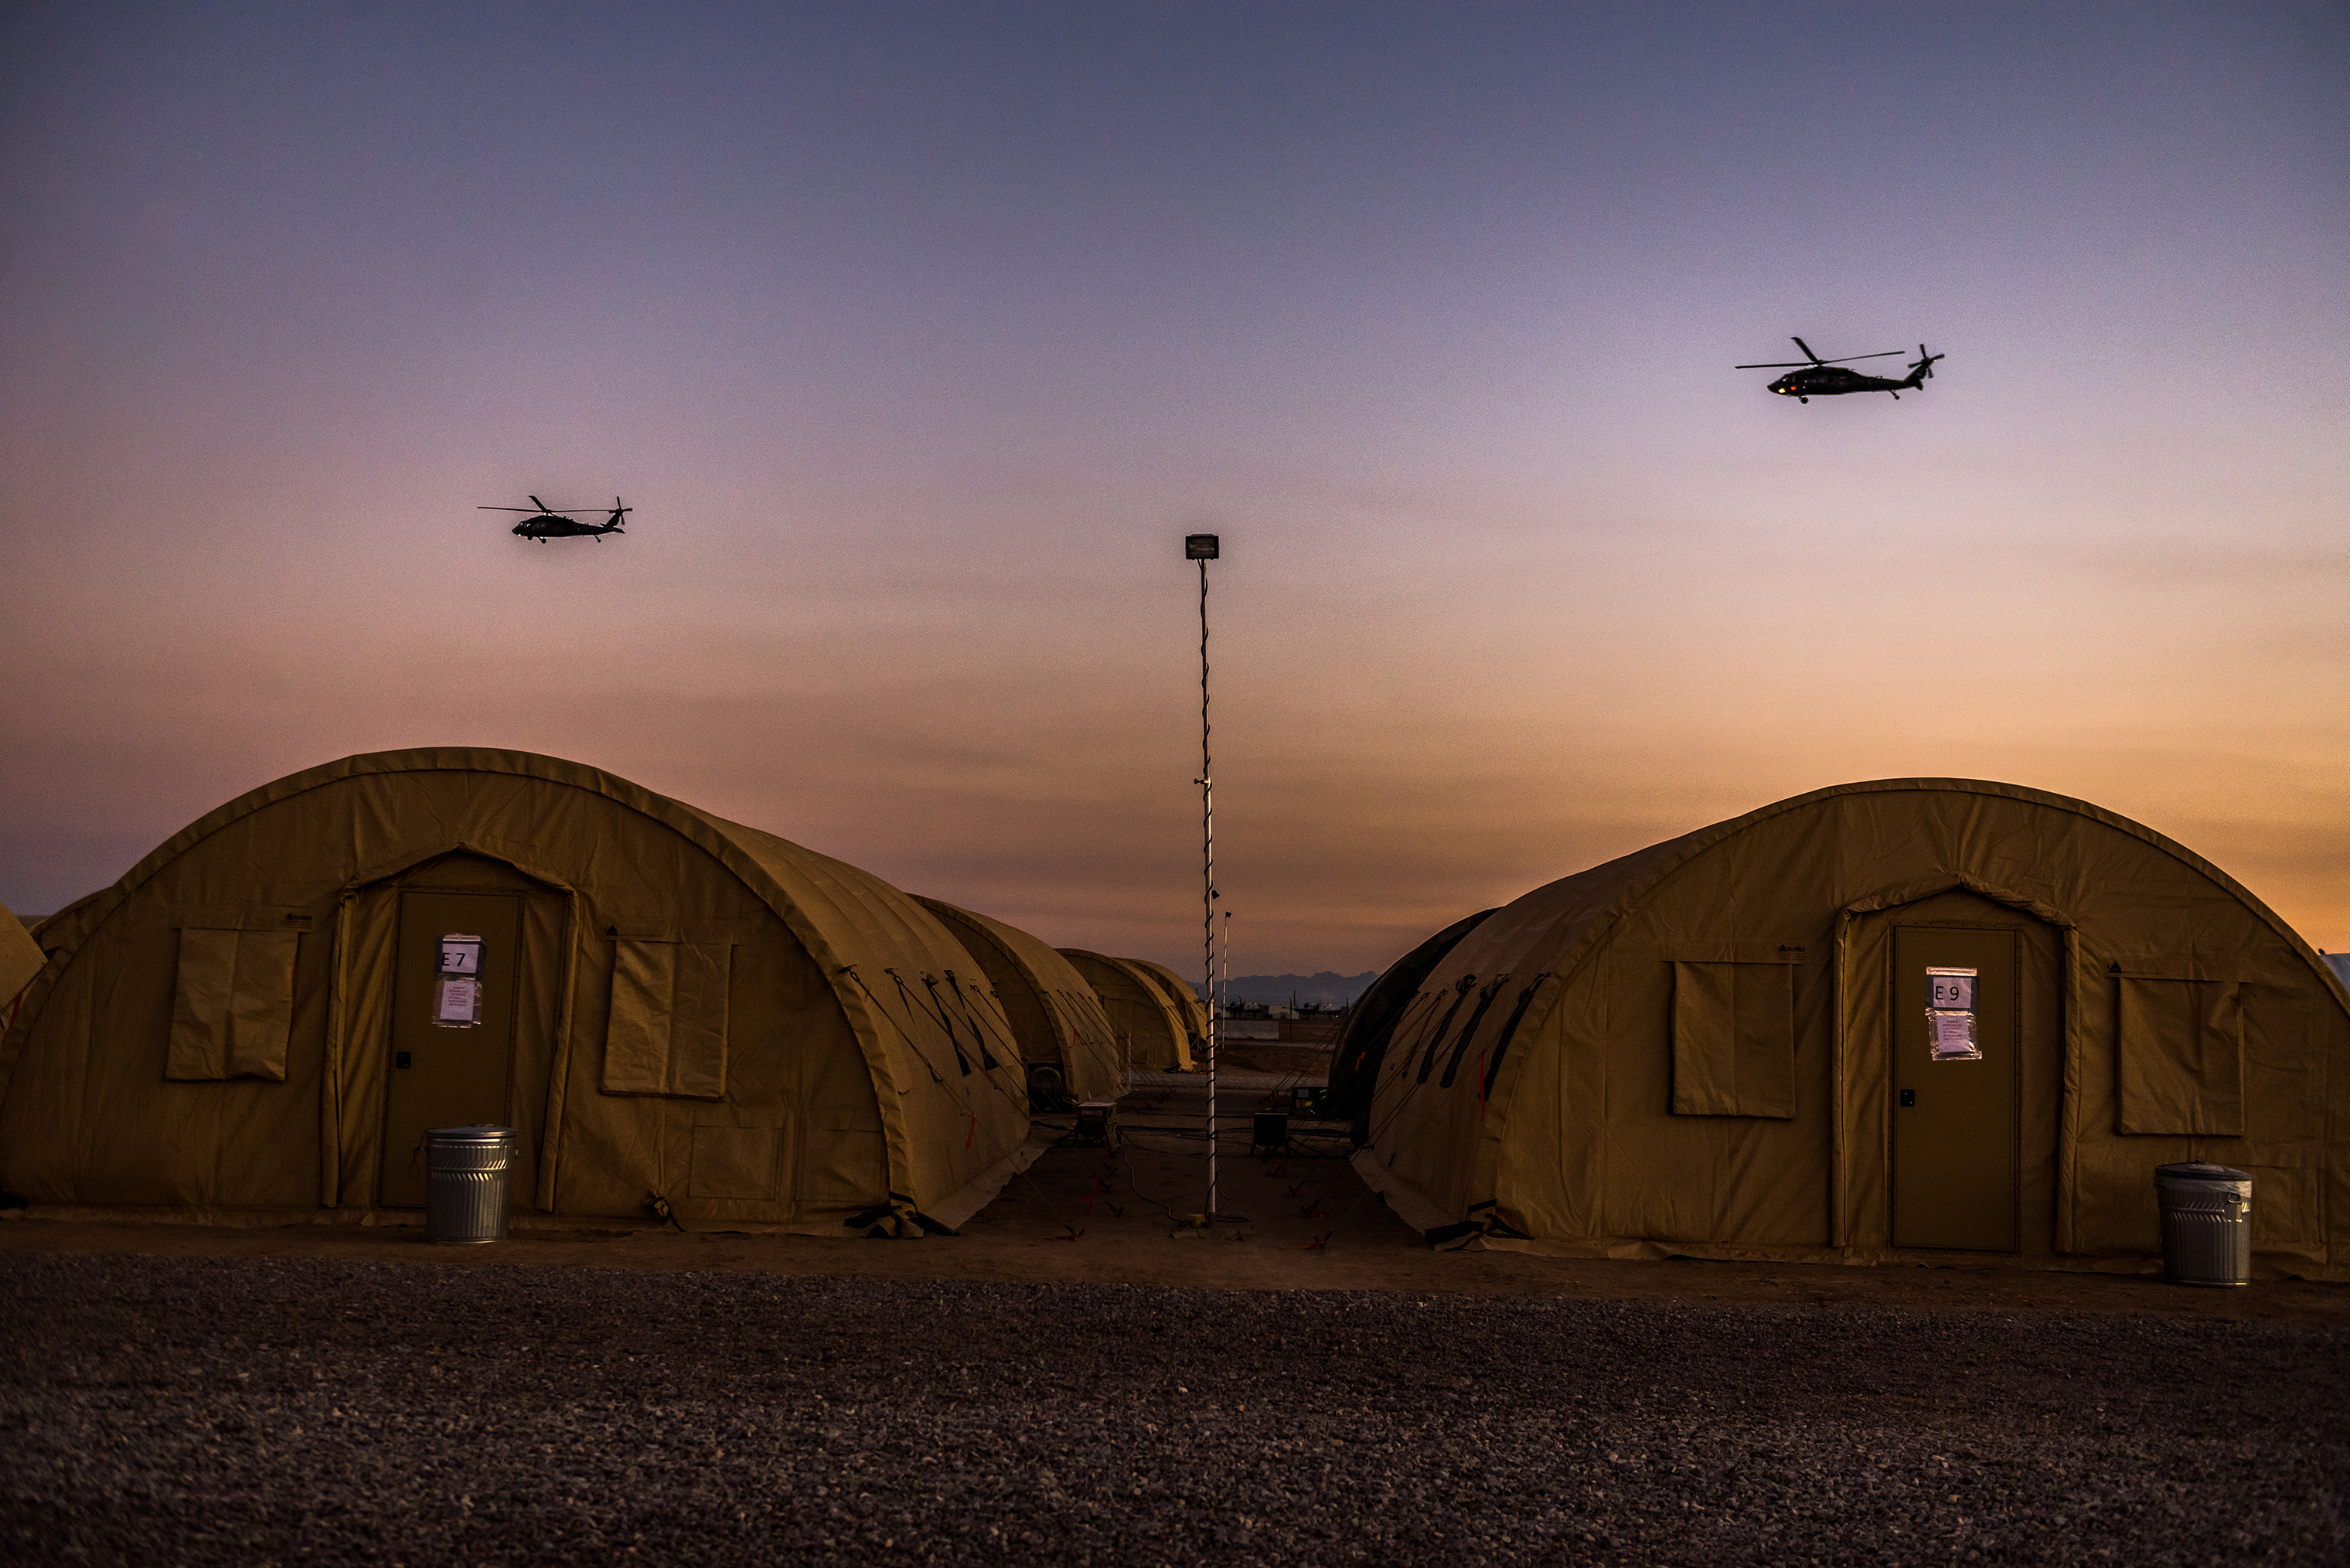 Helicopters fly over rapidly assembled tents used for army sleeping quarters.